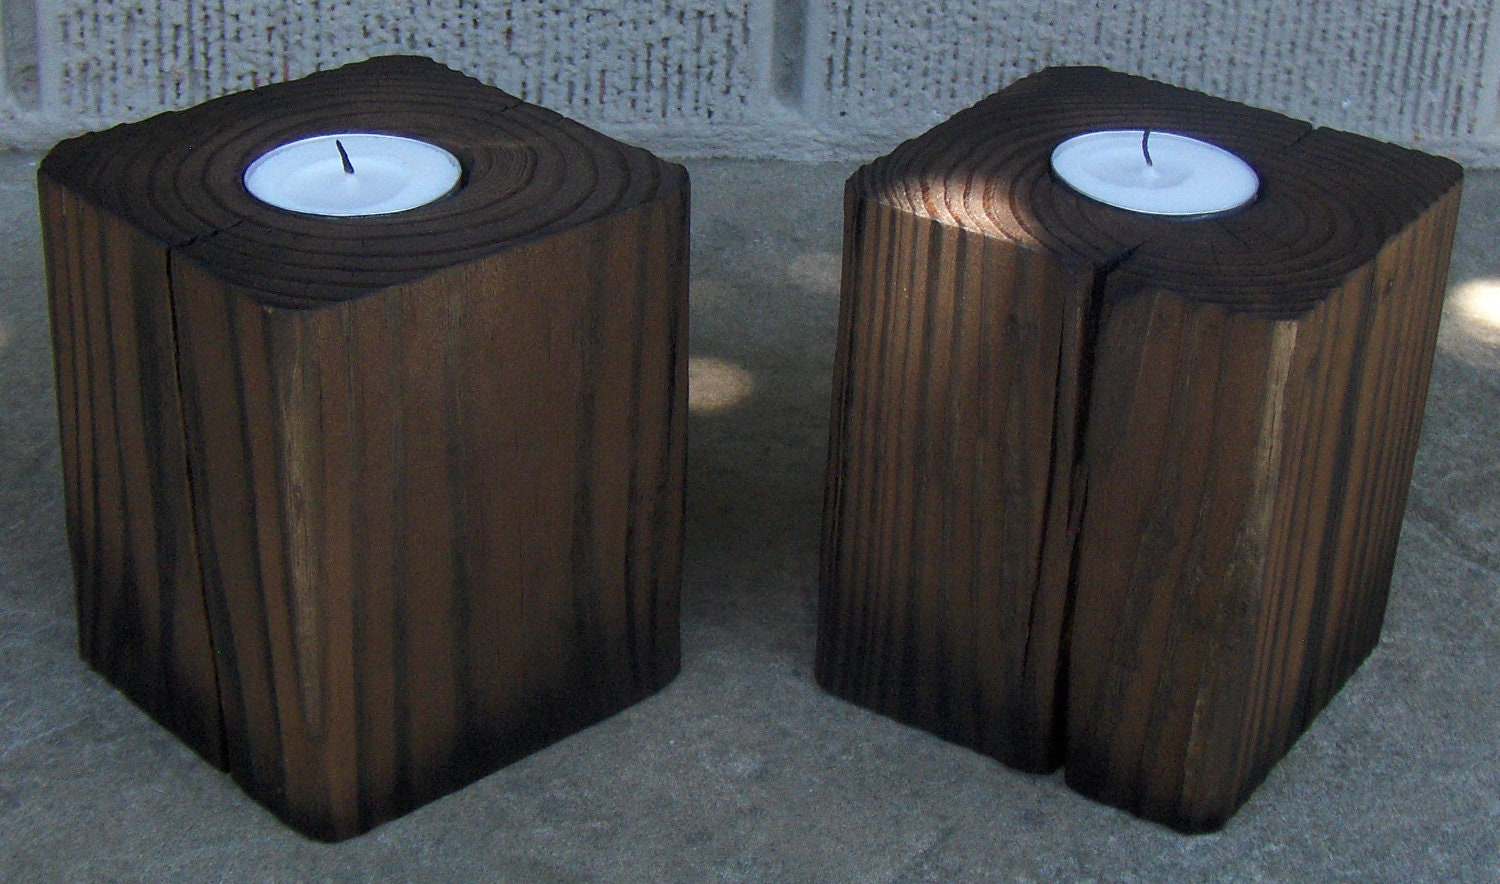 Pair Of Wood Block Tea Light Candle Holders